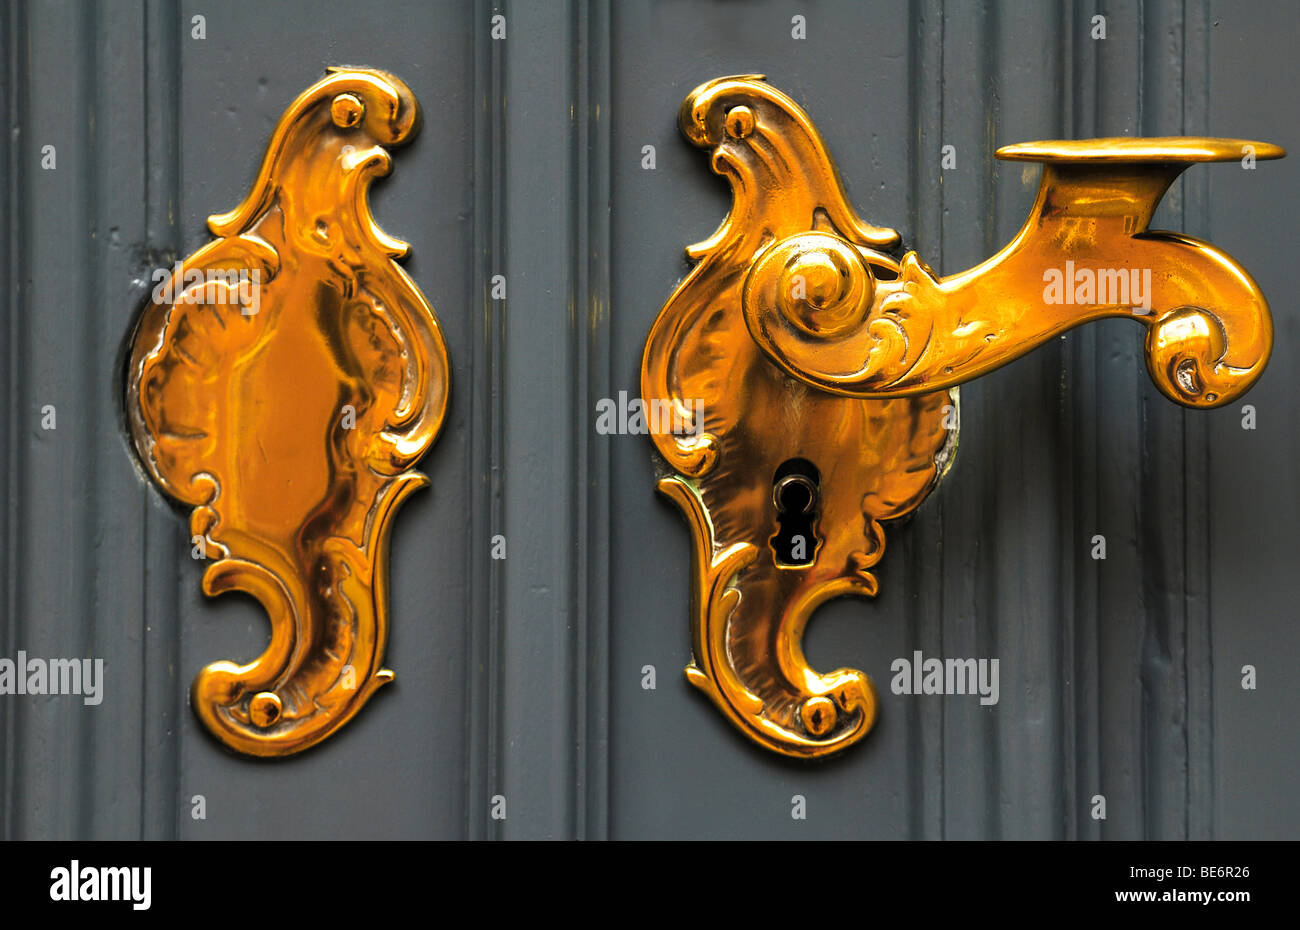 Old Decorative Brass Door Handle, Lueneburg, Lower Saxony, Germany, Europe